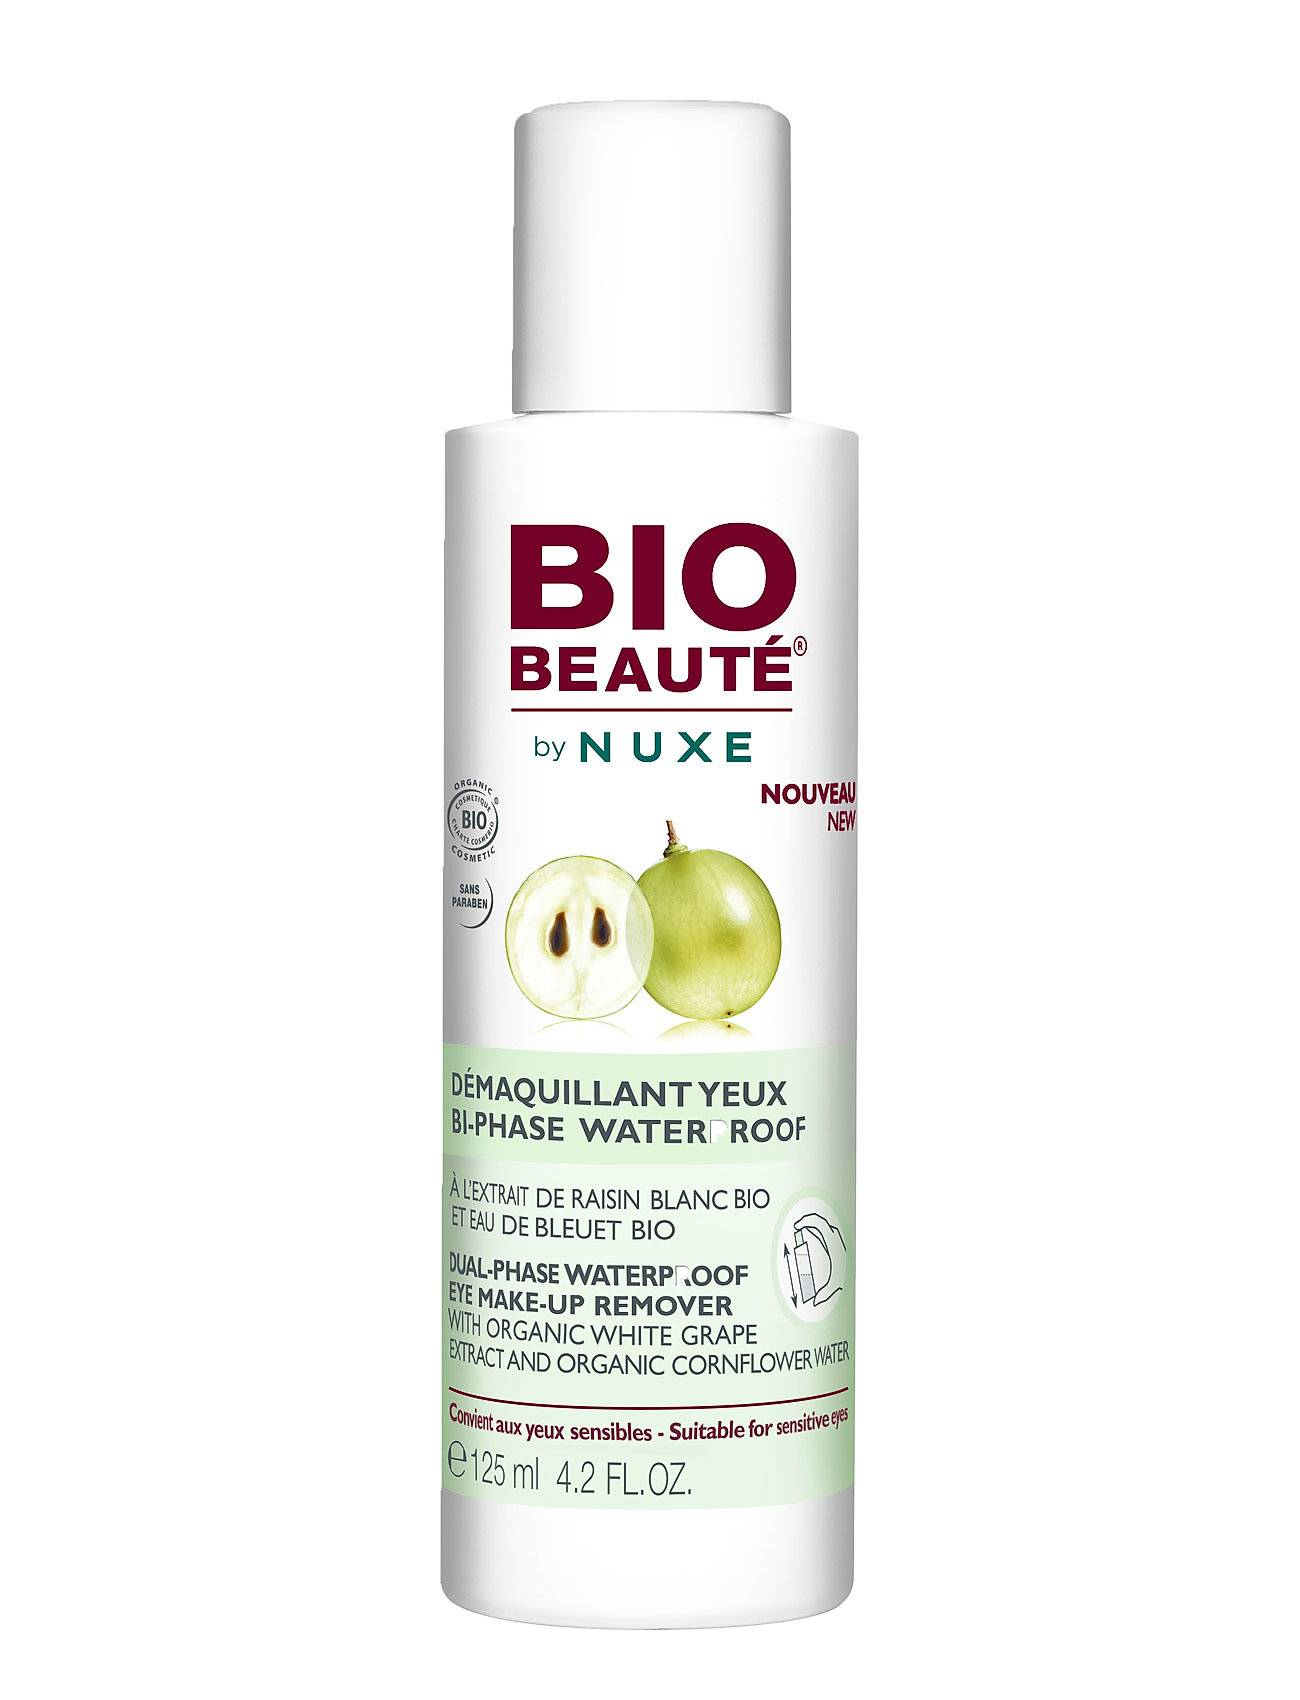 Bio-Beauté by NUXE Cleansing Eye Make-Up Remover Meikinpoisto Nude Bio-Beauté By NUXE